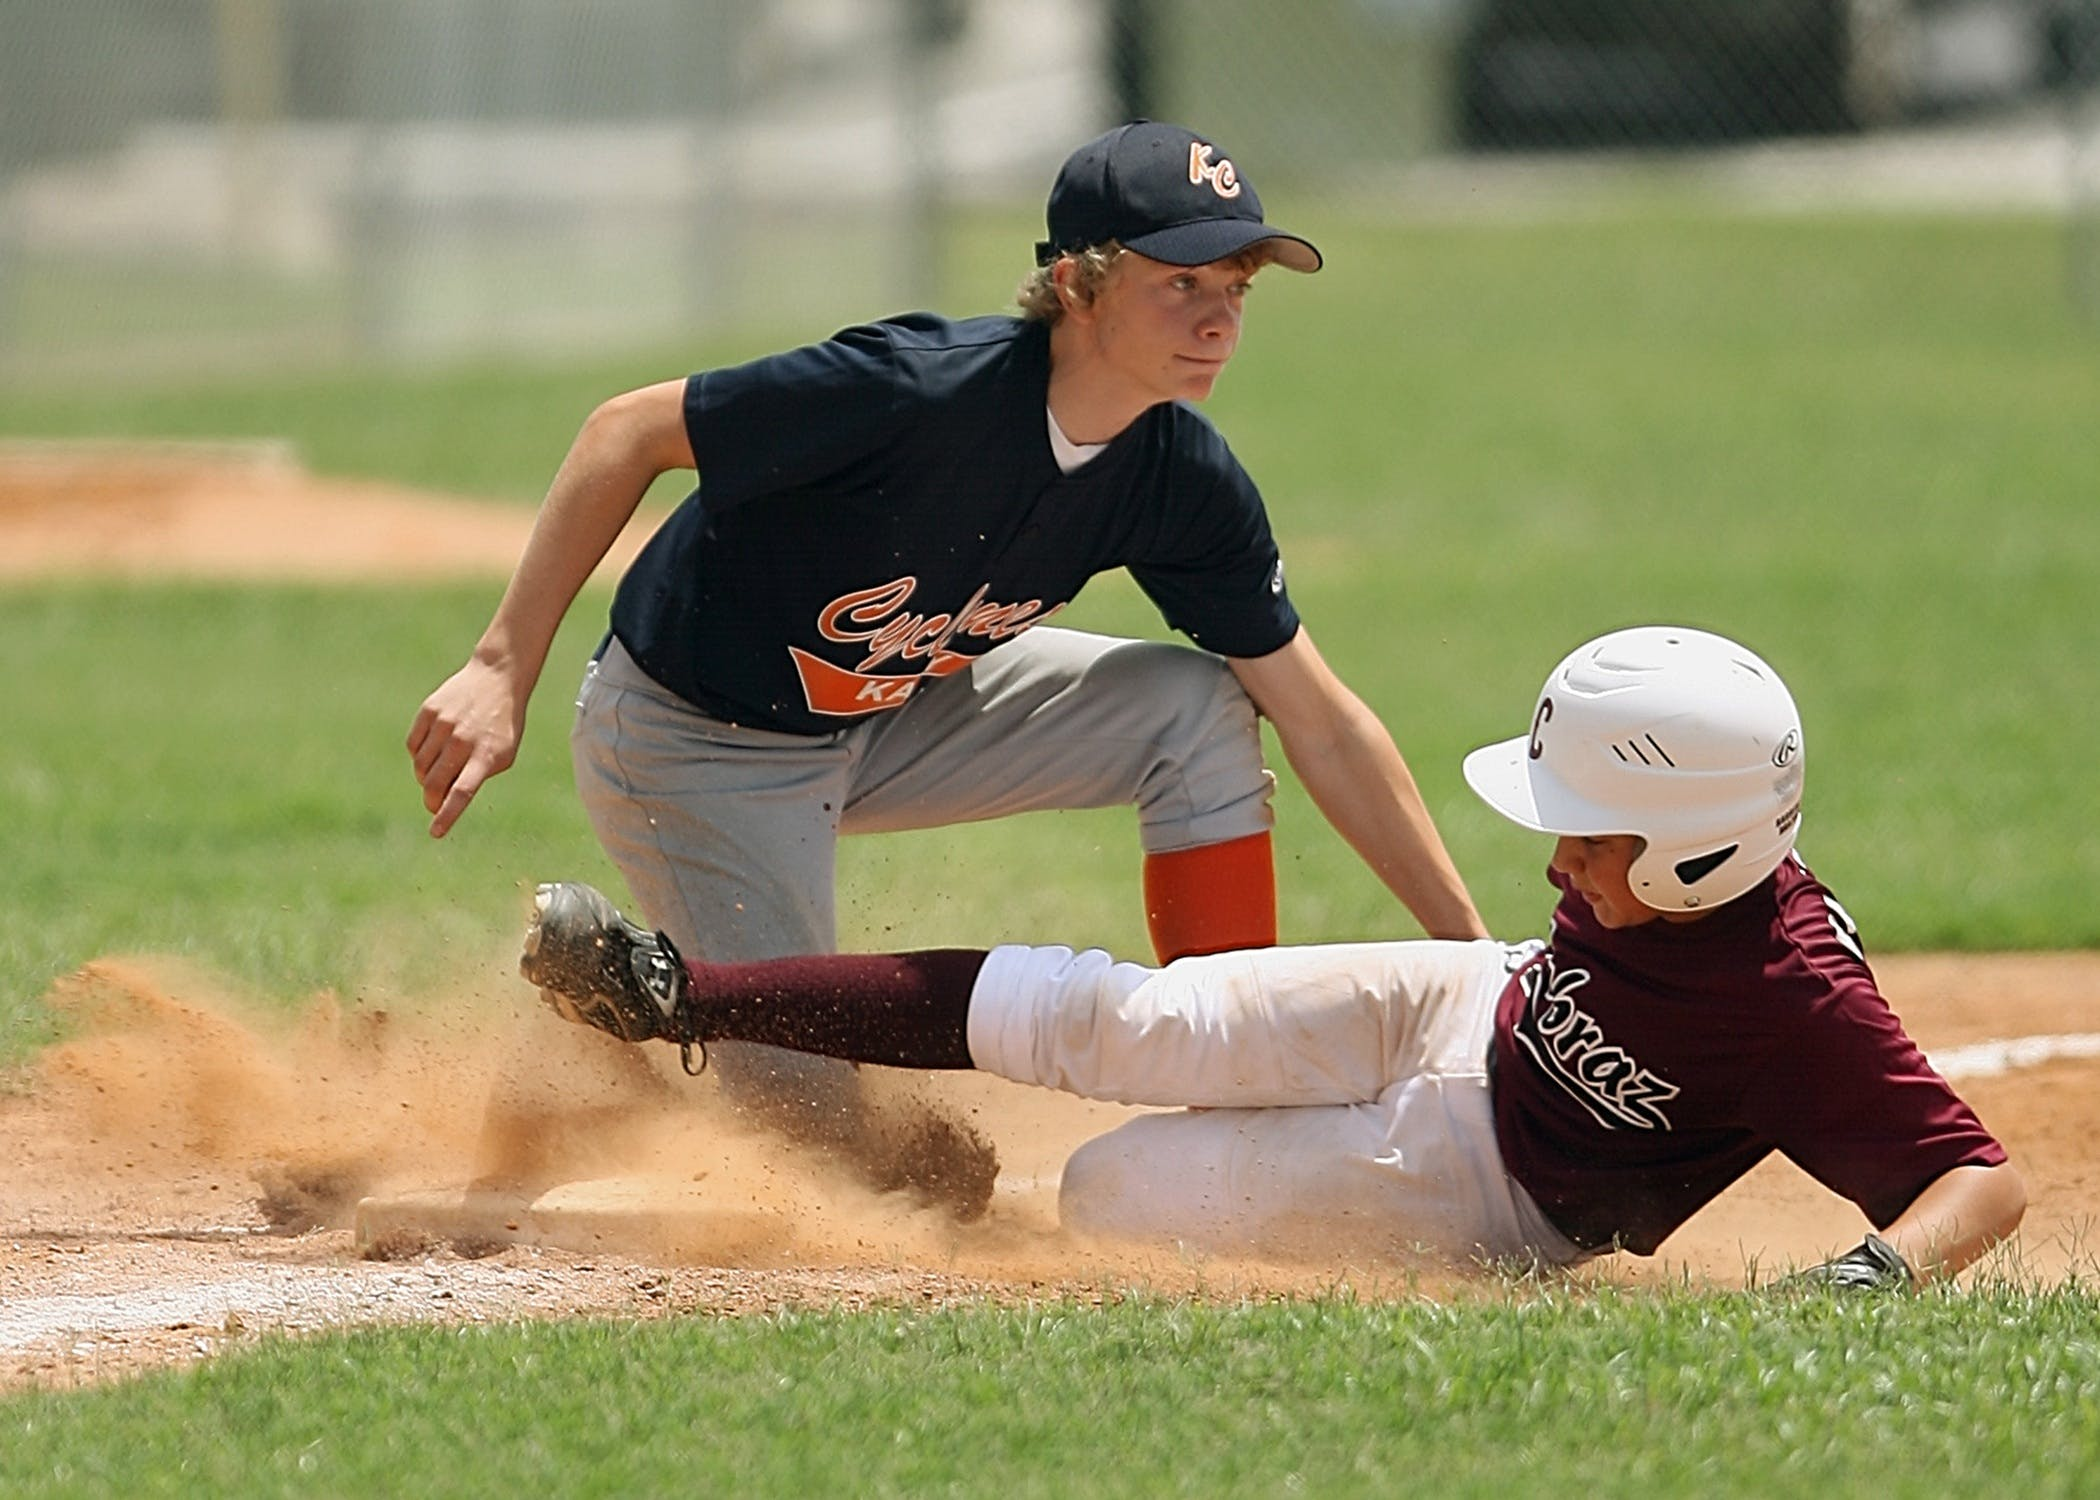 Man Kneeling Trays to Stop Man While Hes Sliding Towards Base